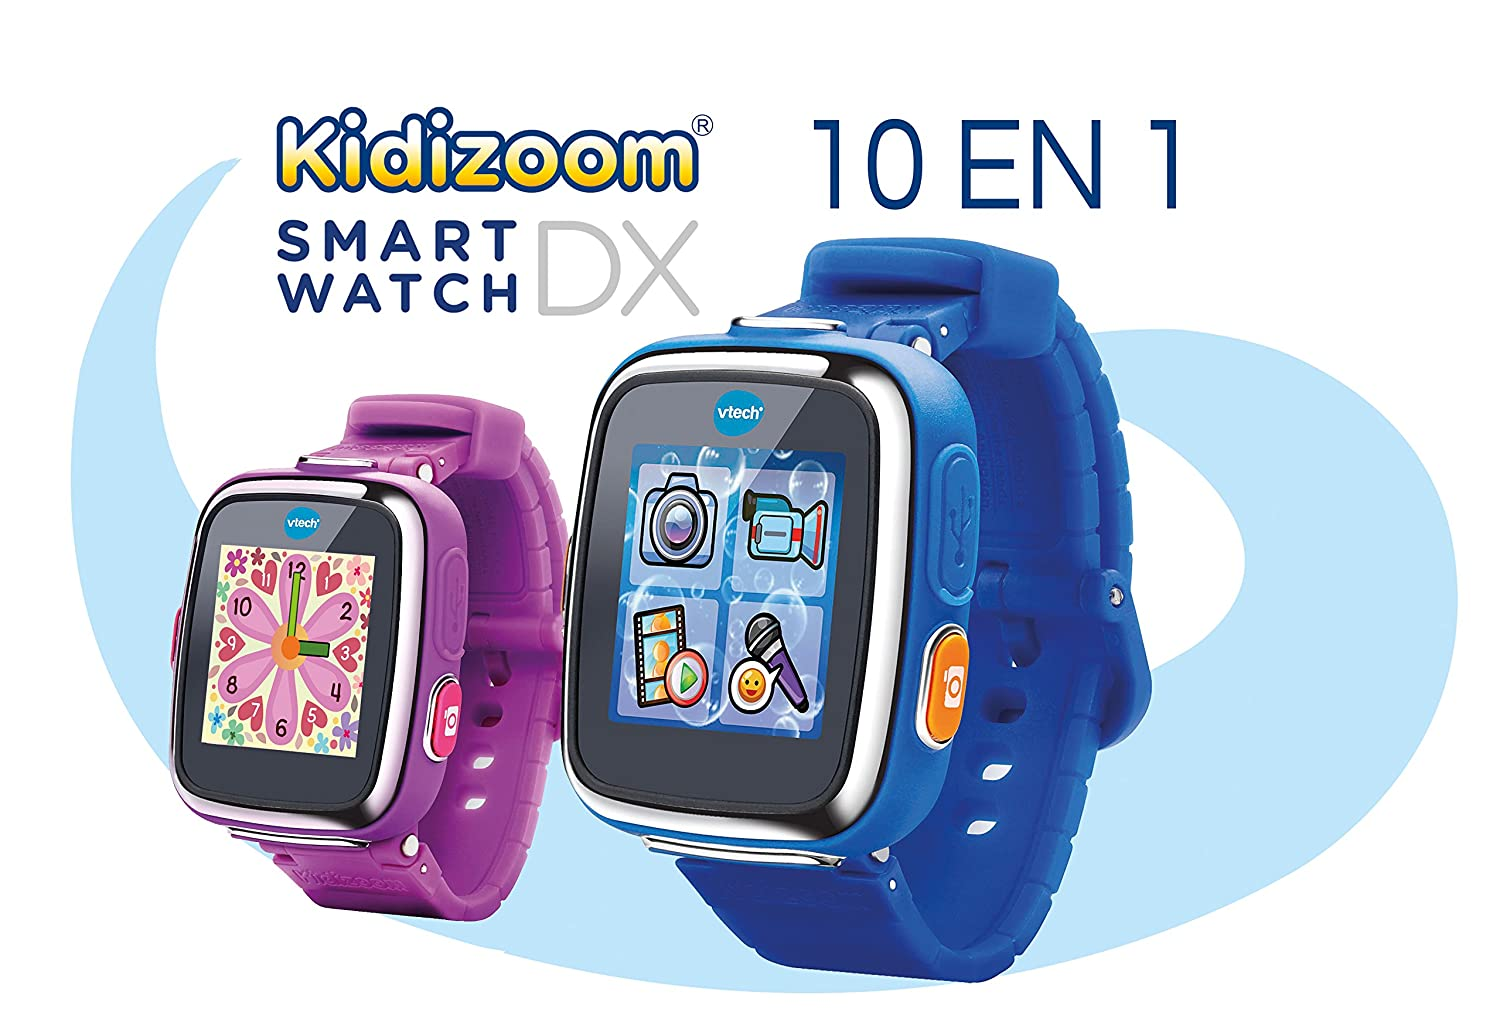 VTech - Kidizoom Reloj Interactivo Connect DX, Color Azul, versión Francesa